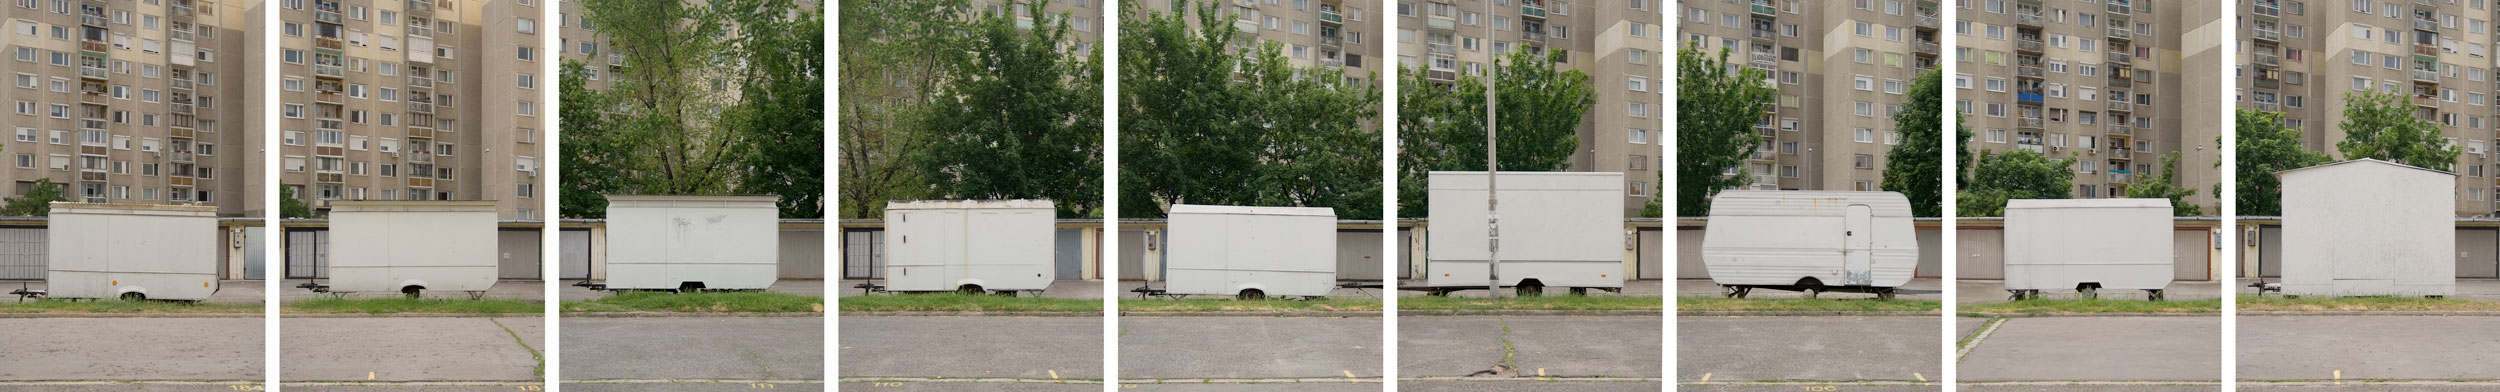 Carlos Azeredo Mesquita – The Radiant City, Havana Street Estate, Budapest – Caravans, 2010, a series of digital prints on matte baryt paper, mounted on Alucobond, total length 380 cm x 60 cm